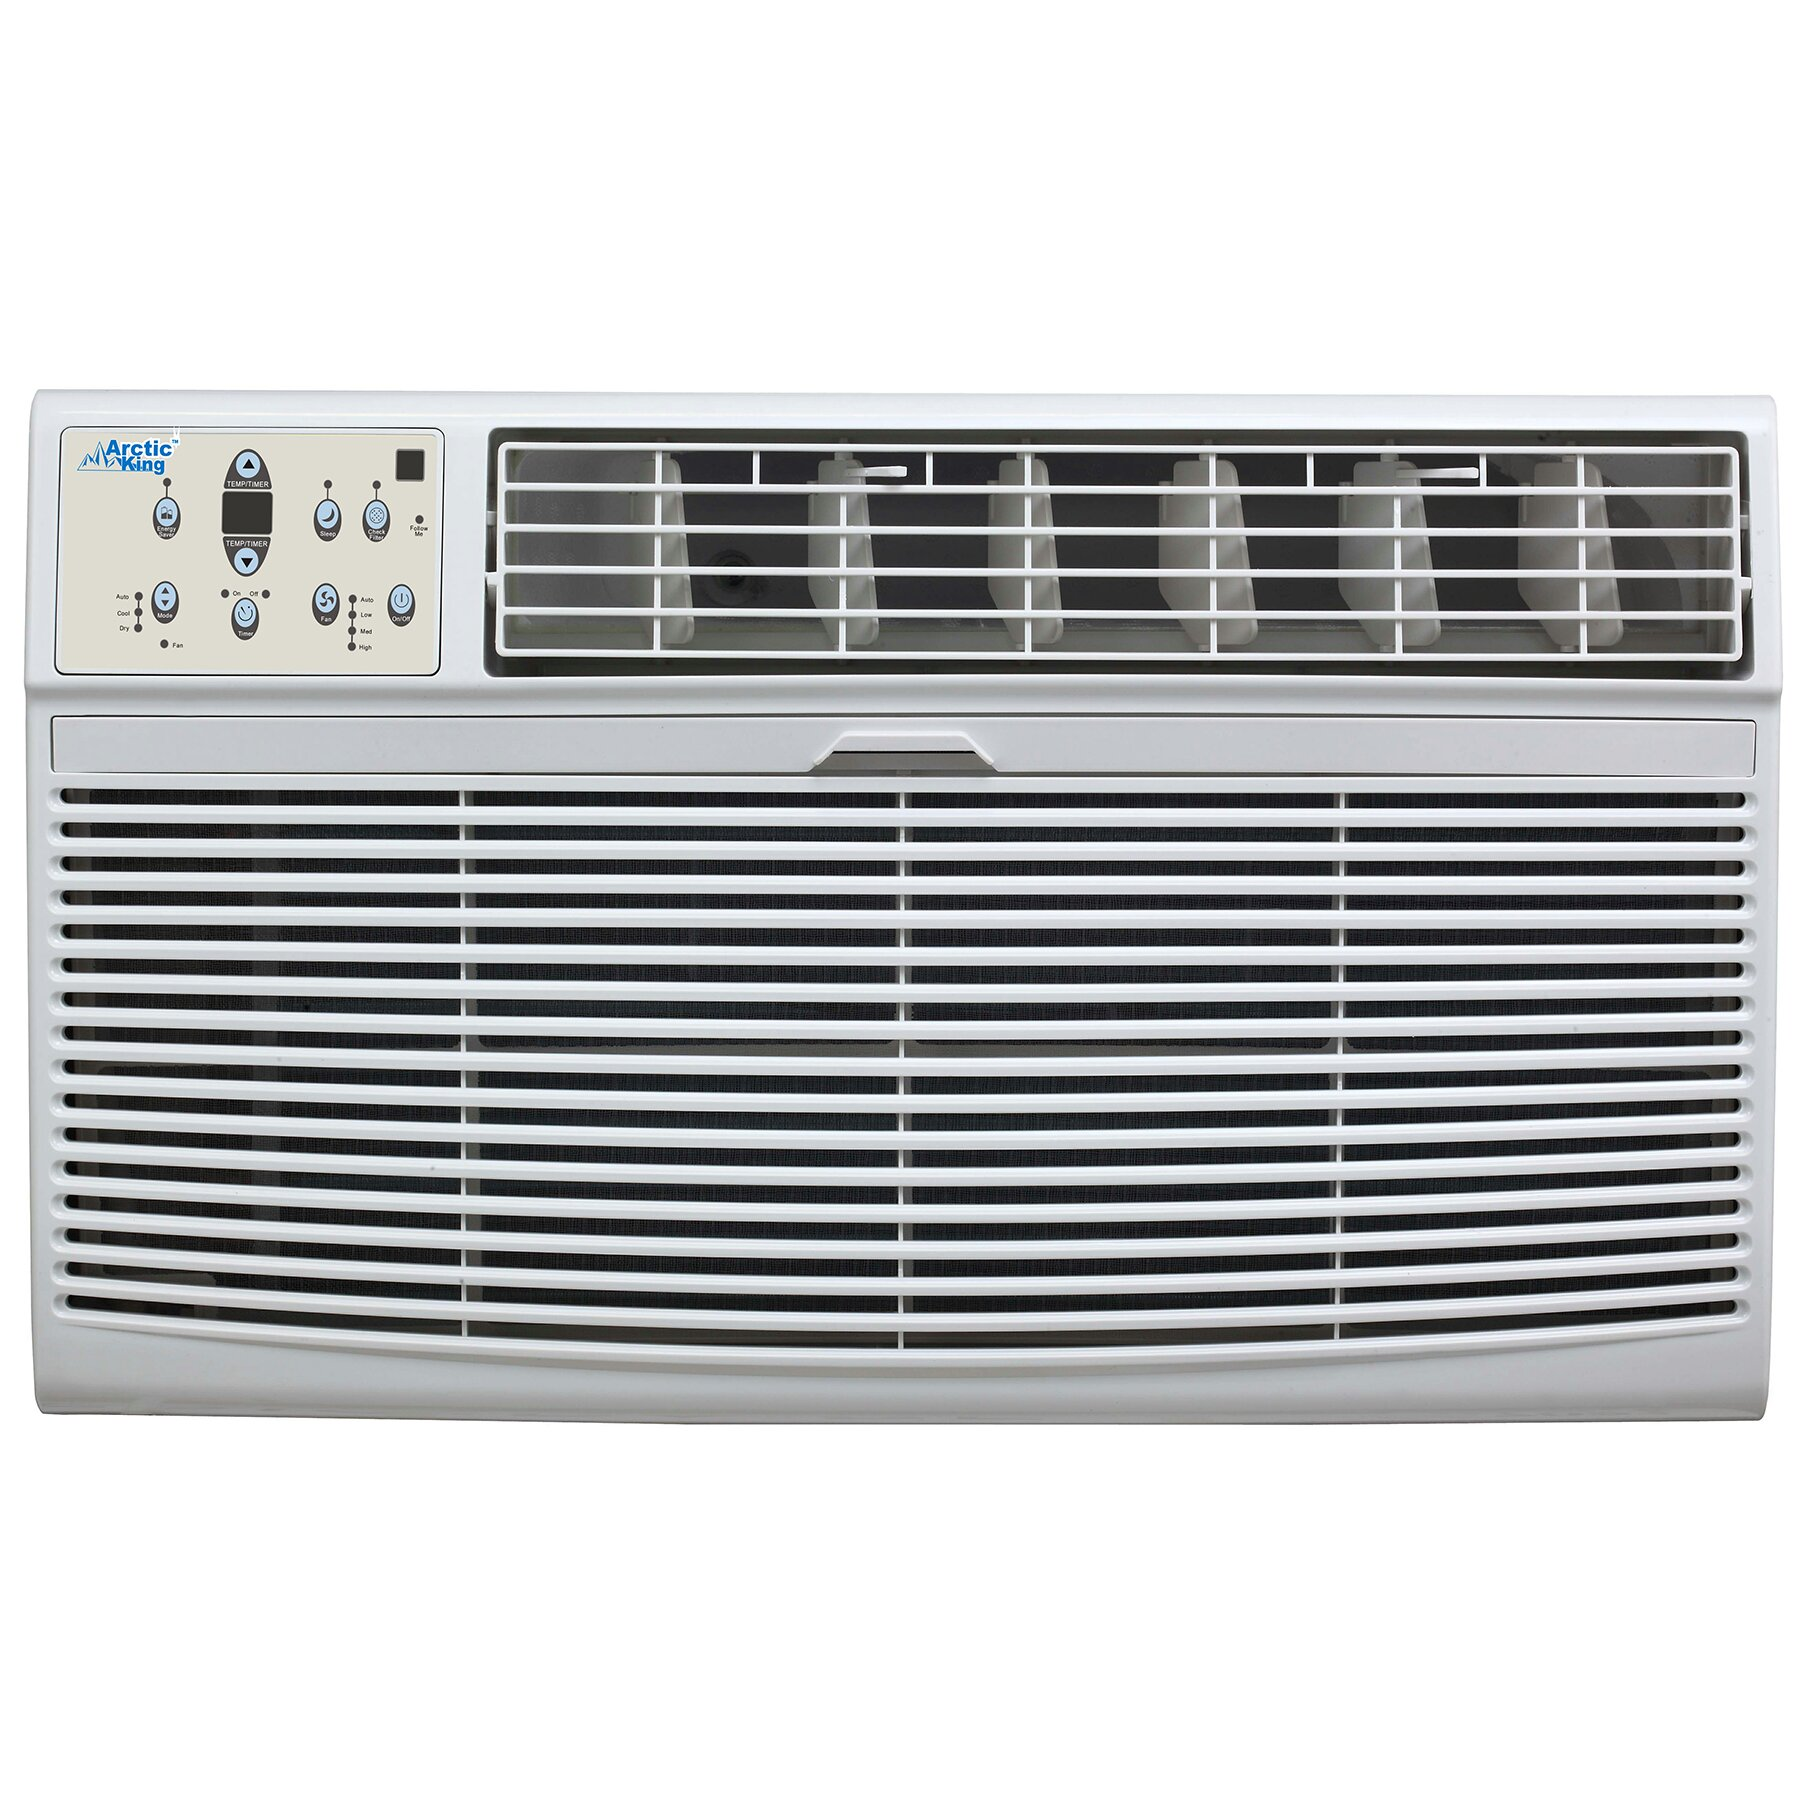 #5D676E Arctic King 12000 BTU Through The Wall Air Conditioner  Recommended 10567 Air Conditioner Through Wall pics with 1800x1800 px on helpvideos.info - Air Conditioners, Air Coolers and more